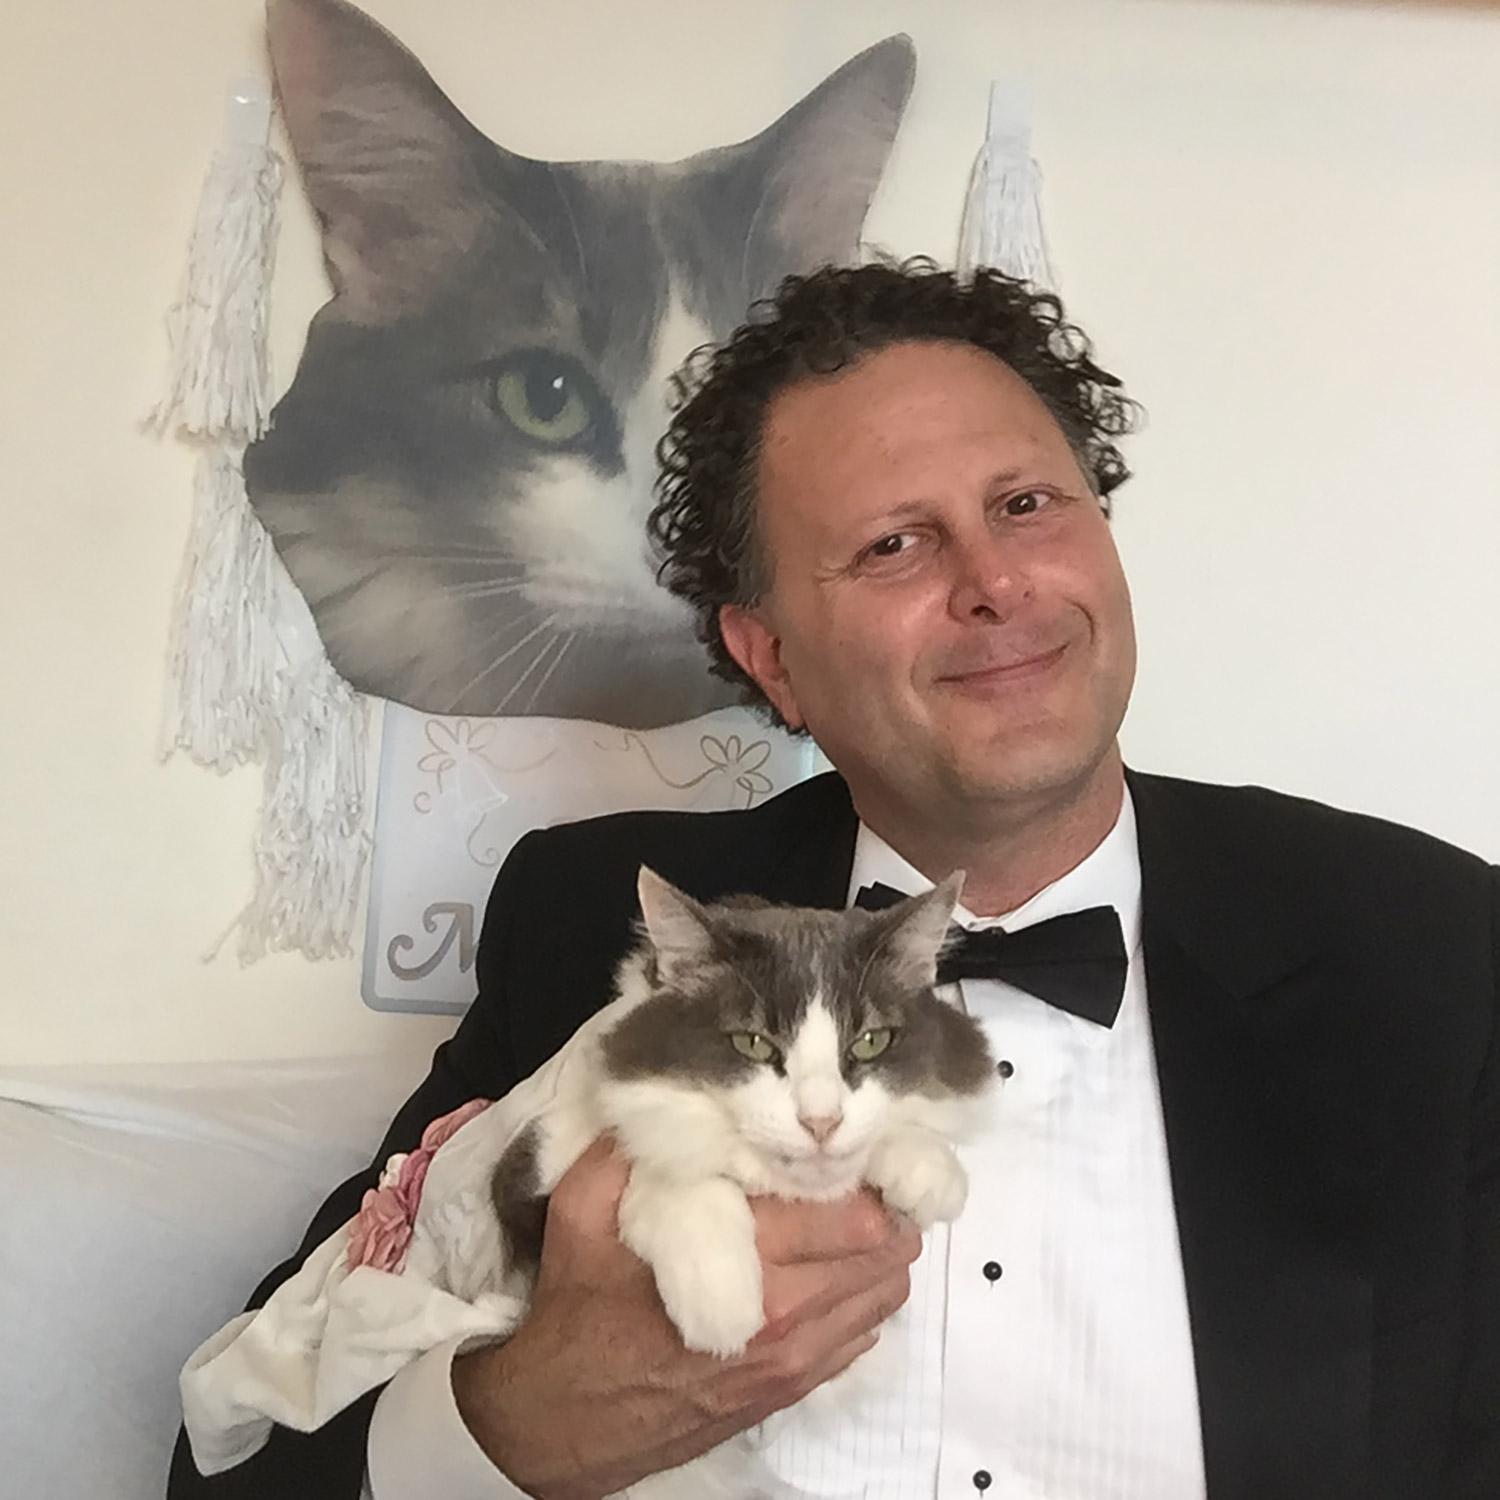 Man Plans to Marry His Cat for Charity